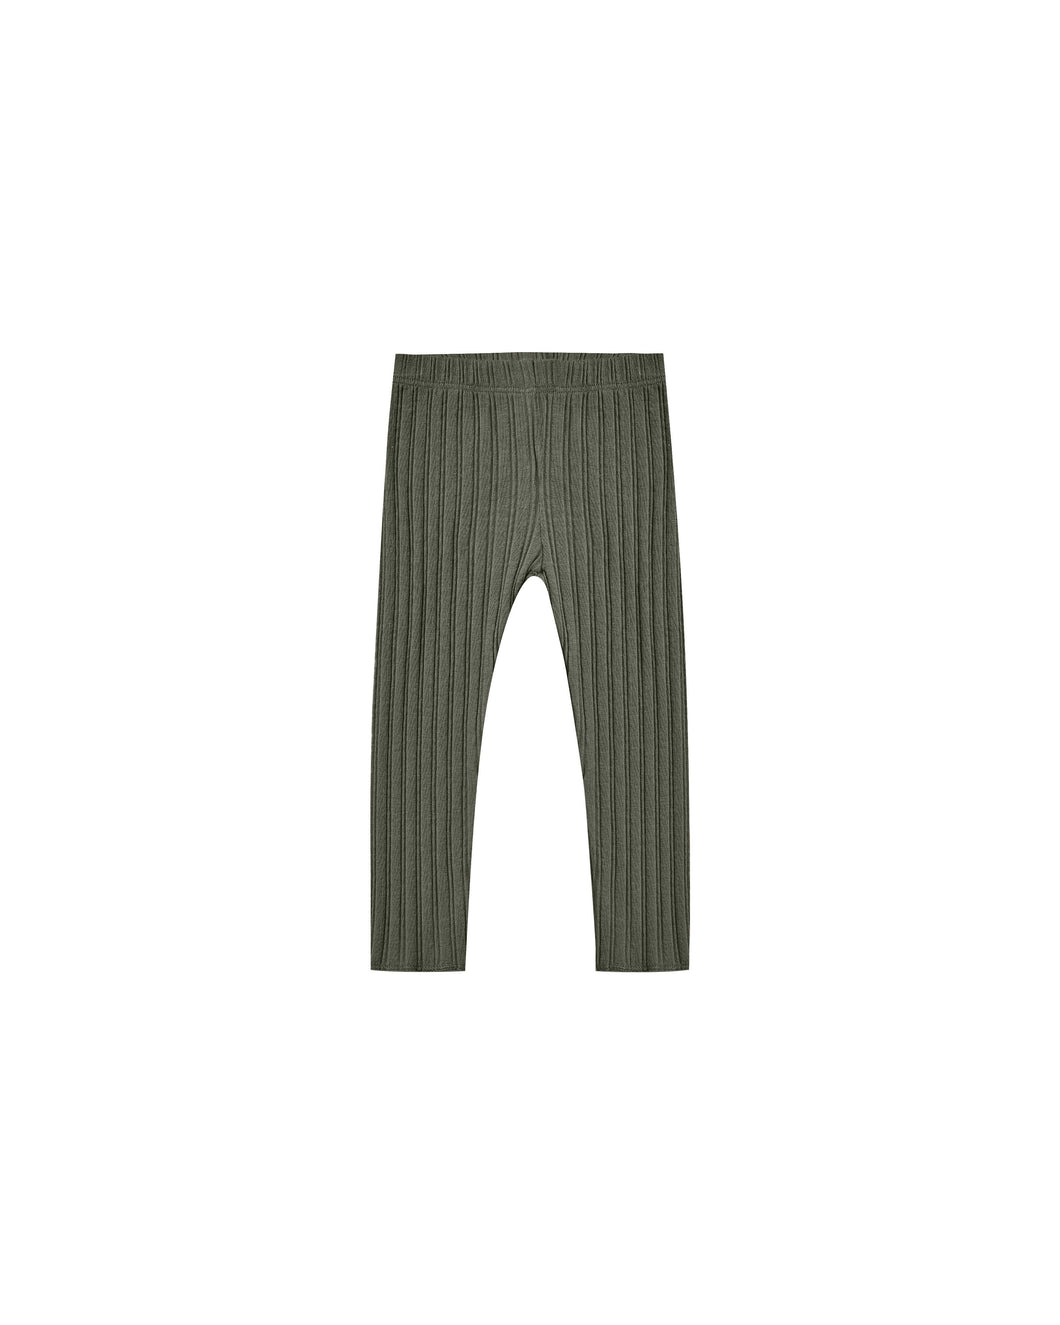 Rib knit legging - forest